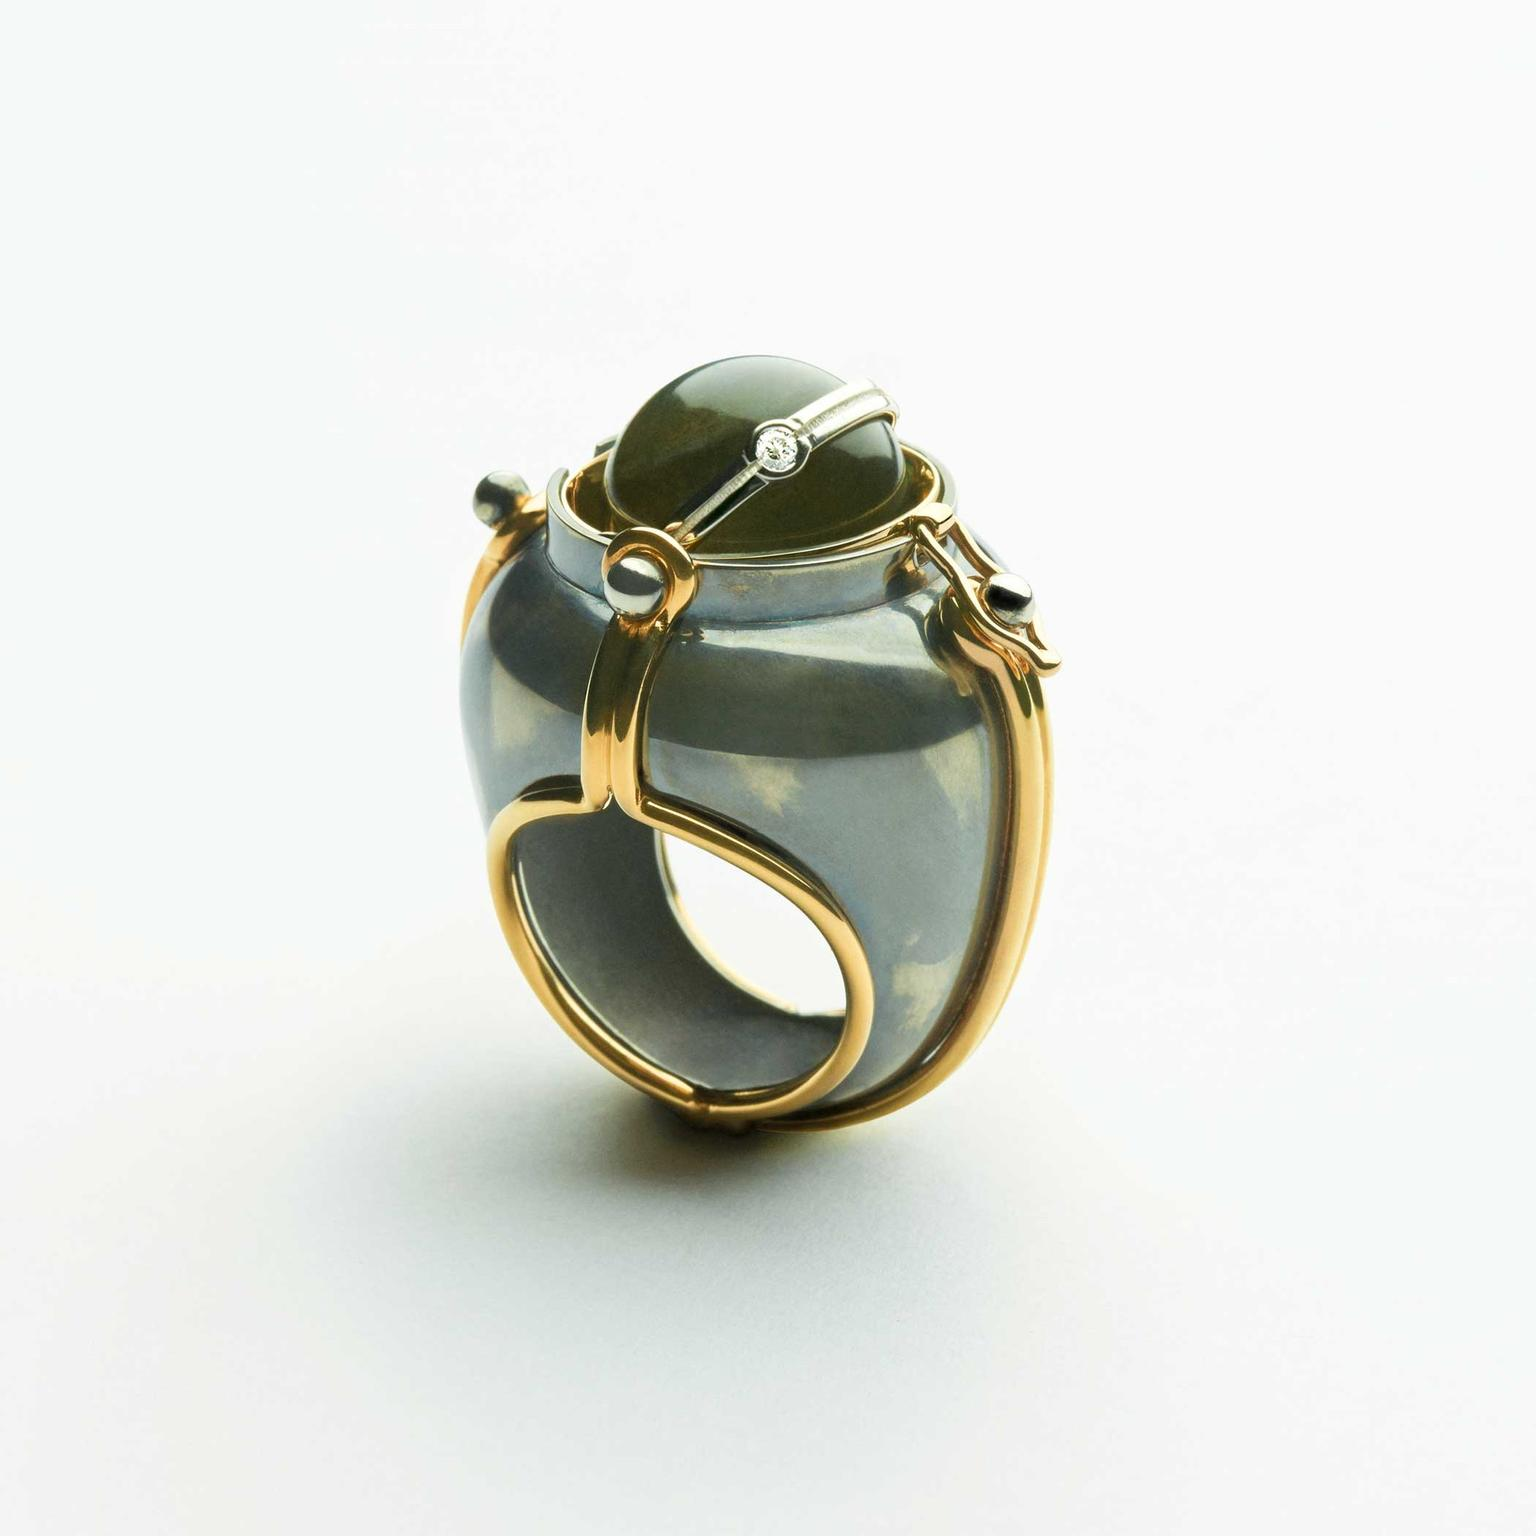 Elie Top Scaphandre onyx globe ring